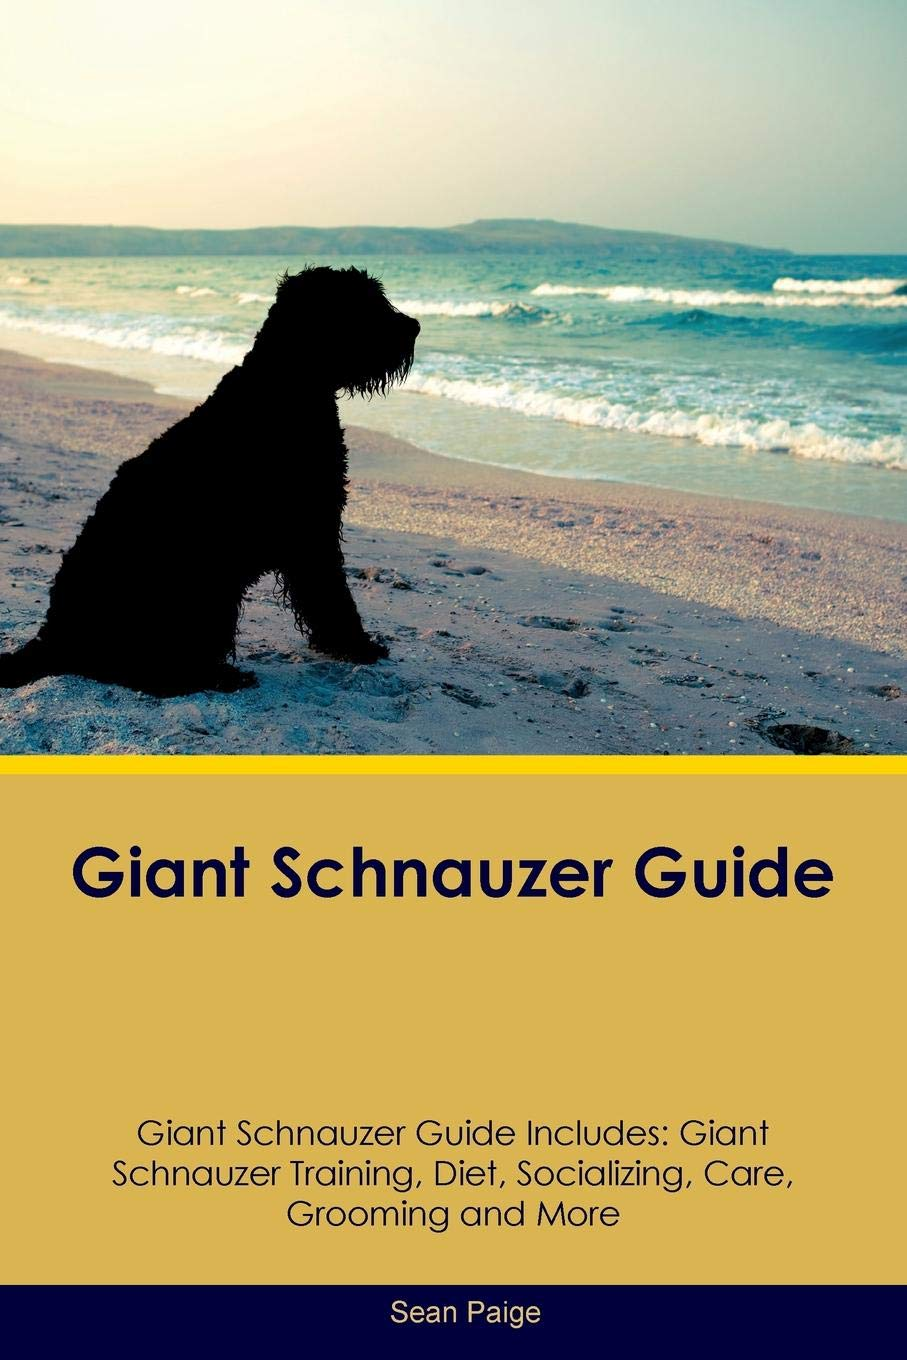 Giant-Schnauzer-Guide-Giant-Schnauzer-Guide-Includes-Giant-Schnauzer-Training-Diet-Socializing-Care-Grooming-Breeding-and-More